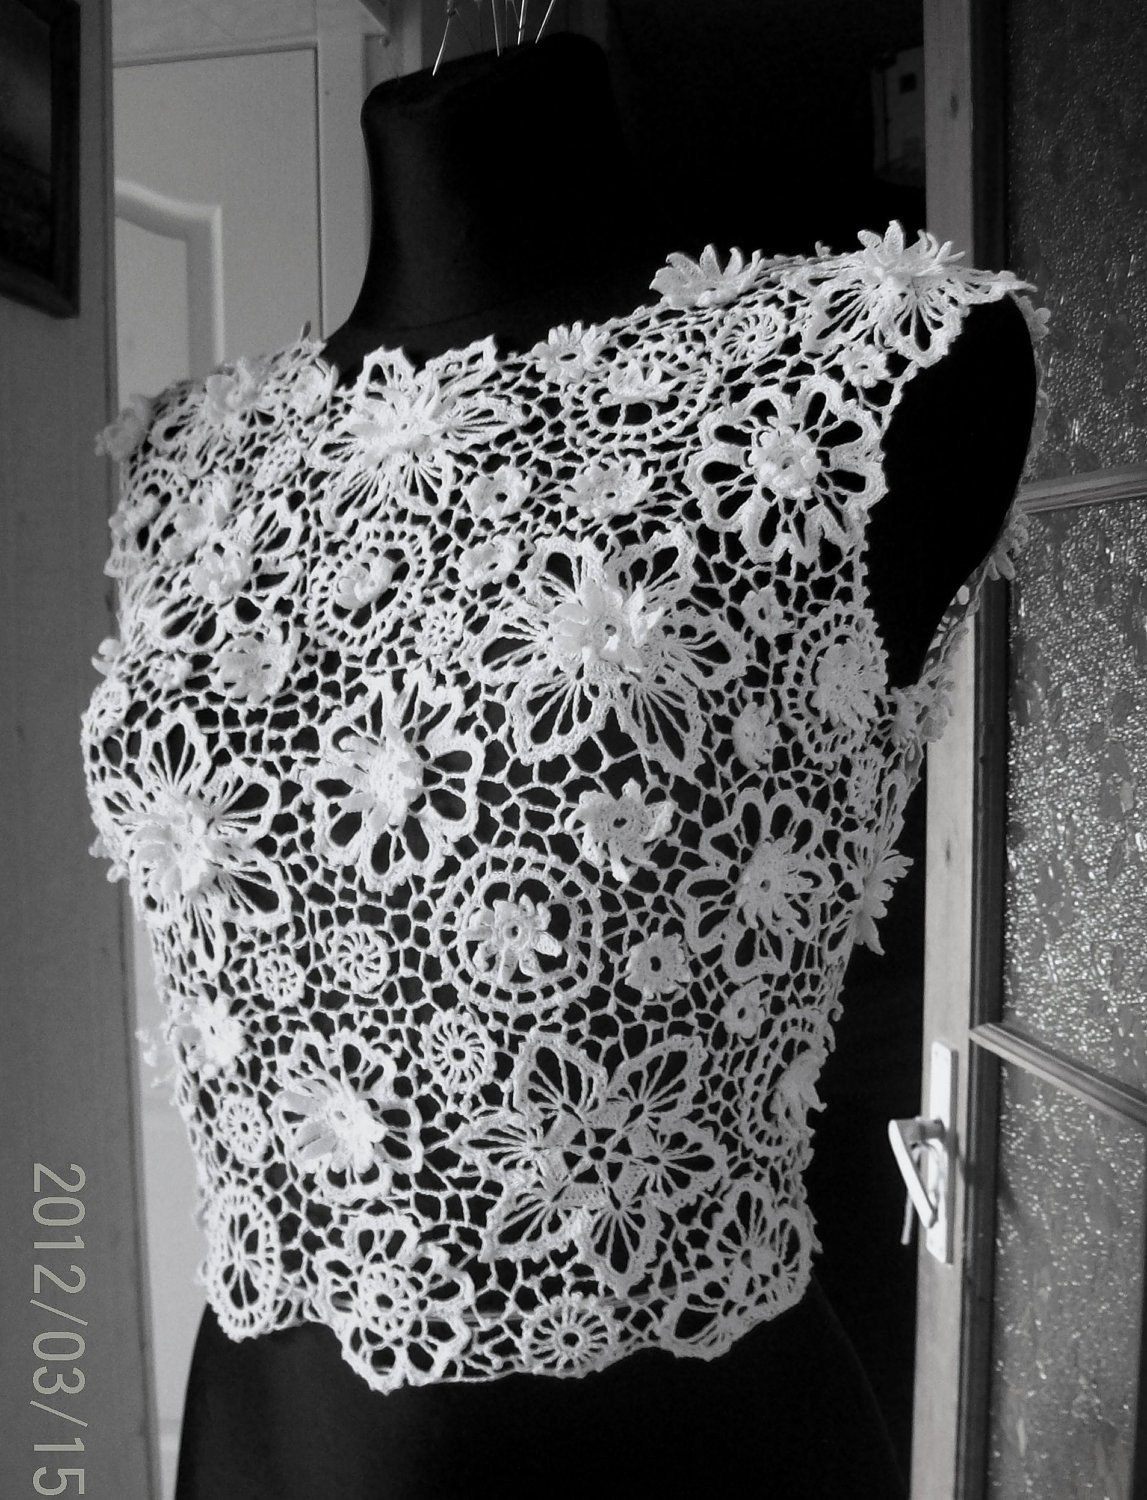 Irish crochet lace blouse dress top by LaimInga on Etsy